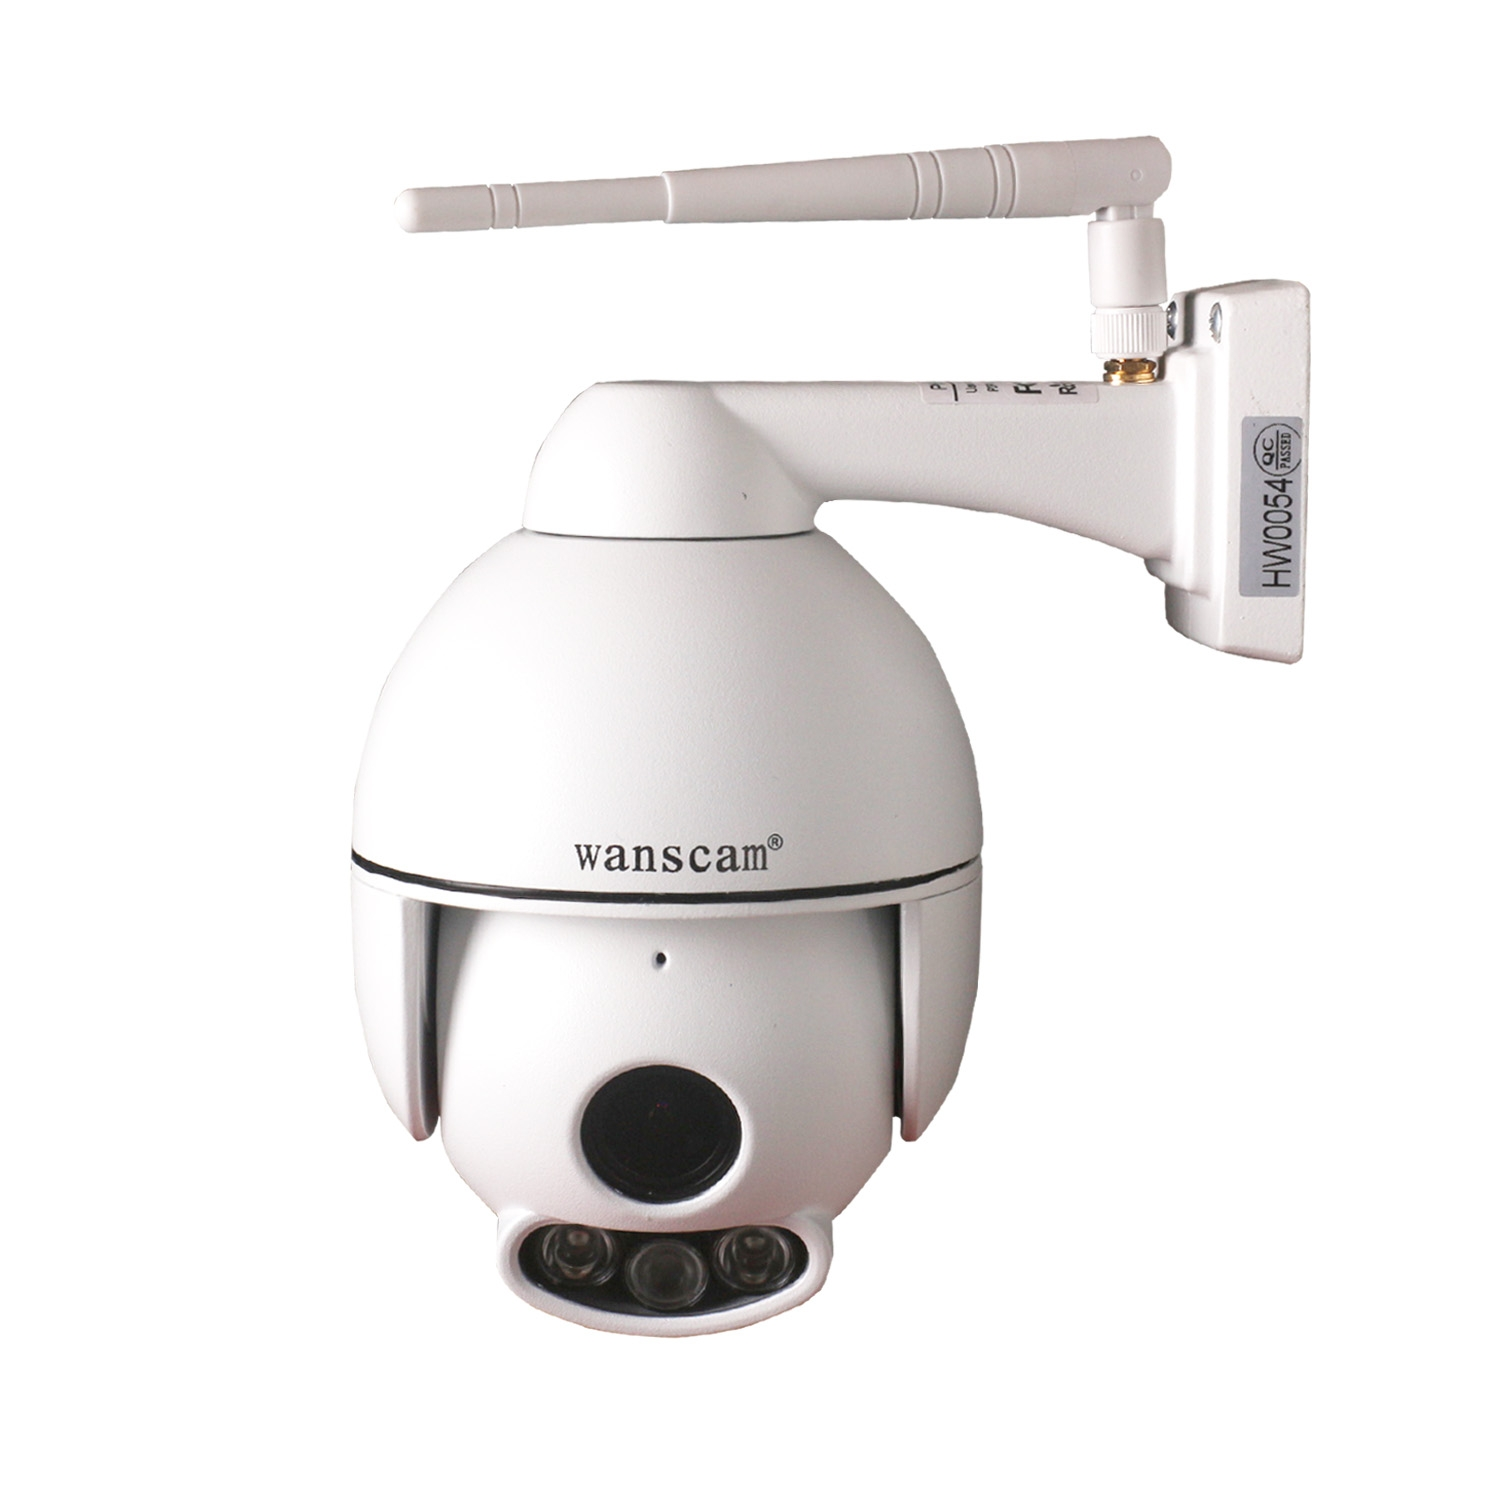 "WIFI IP Camera HD 5x Zoom Opname Functie 1080P <span class=""smallText"">[SC3738]</span>"